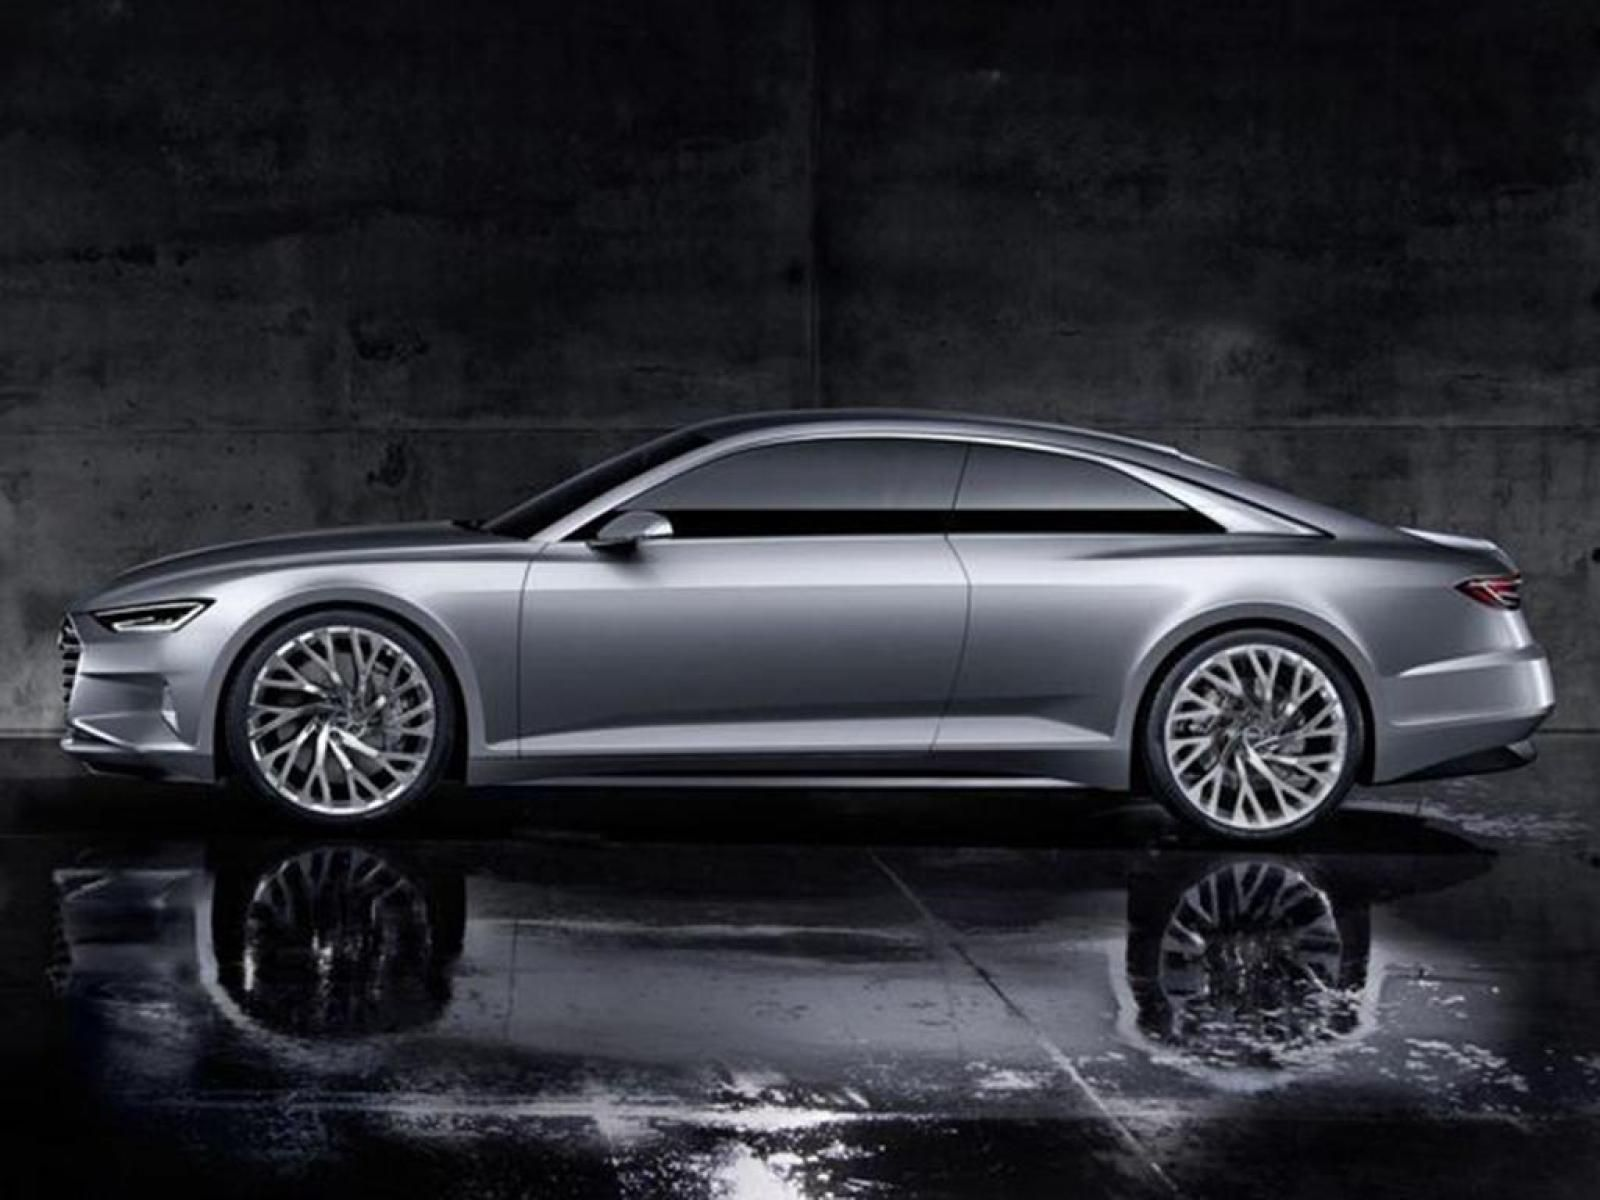 2018 audi a6 coupe doubt whether this will make production prologue design concept a. Black Bedroom Furniture Sets. Home Design Ideas